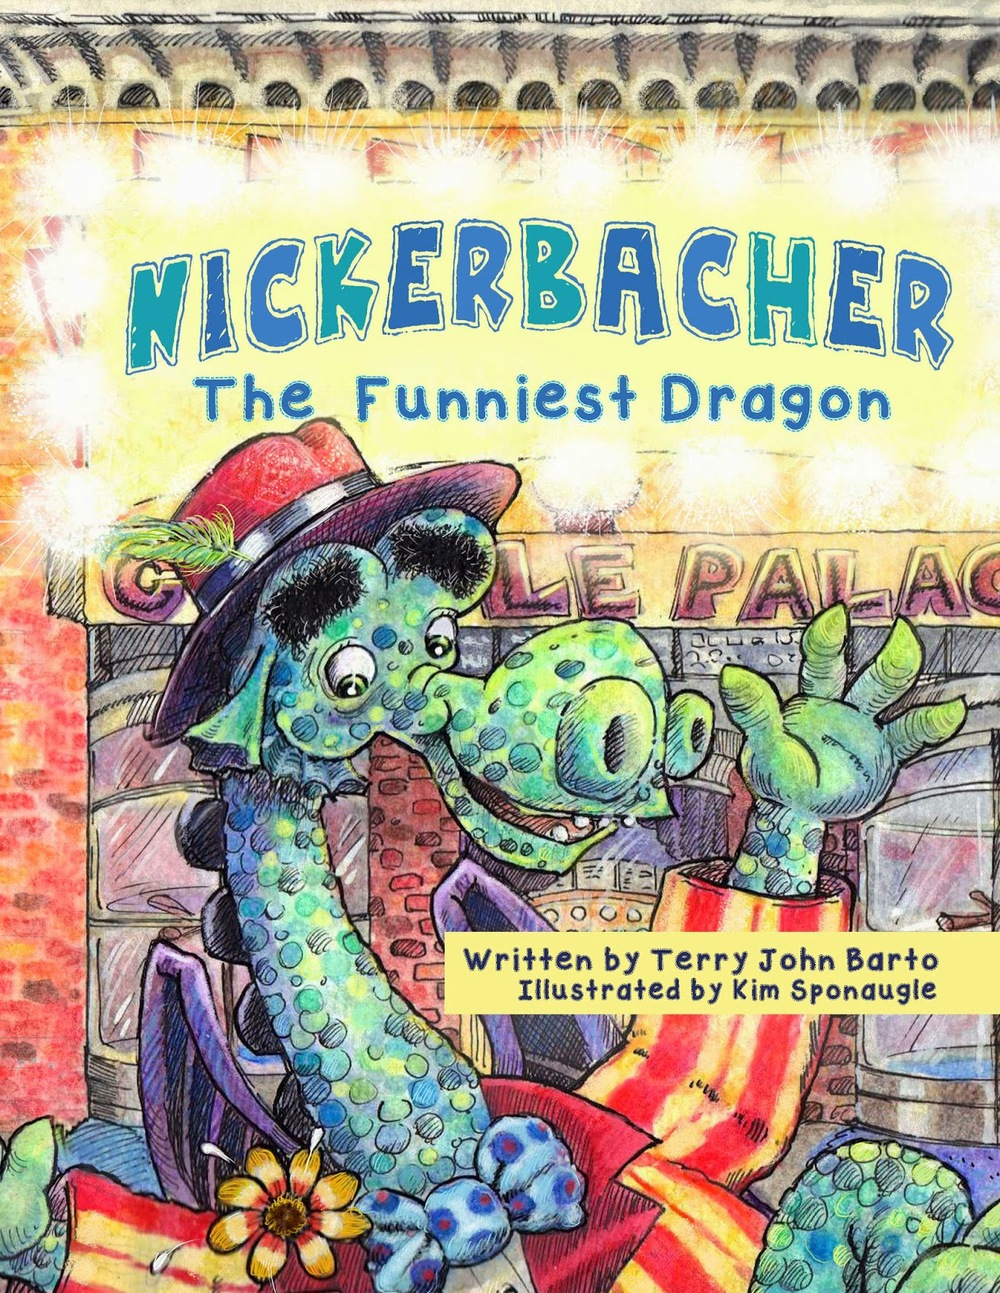 Nickerbacher, The Funniest Dragon By Terry John Barto in OutlooK-12 Magazine